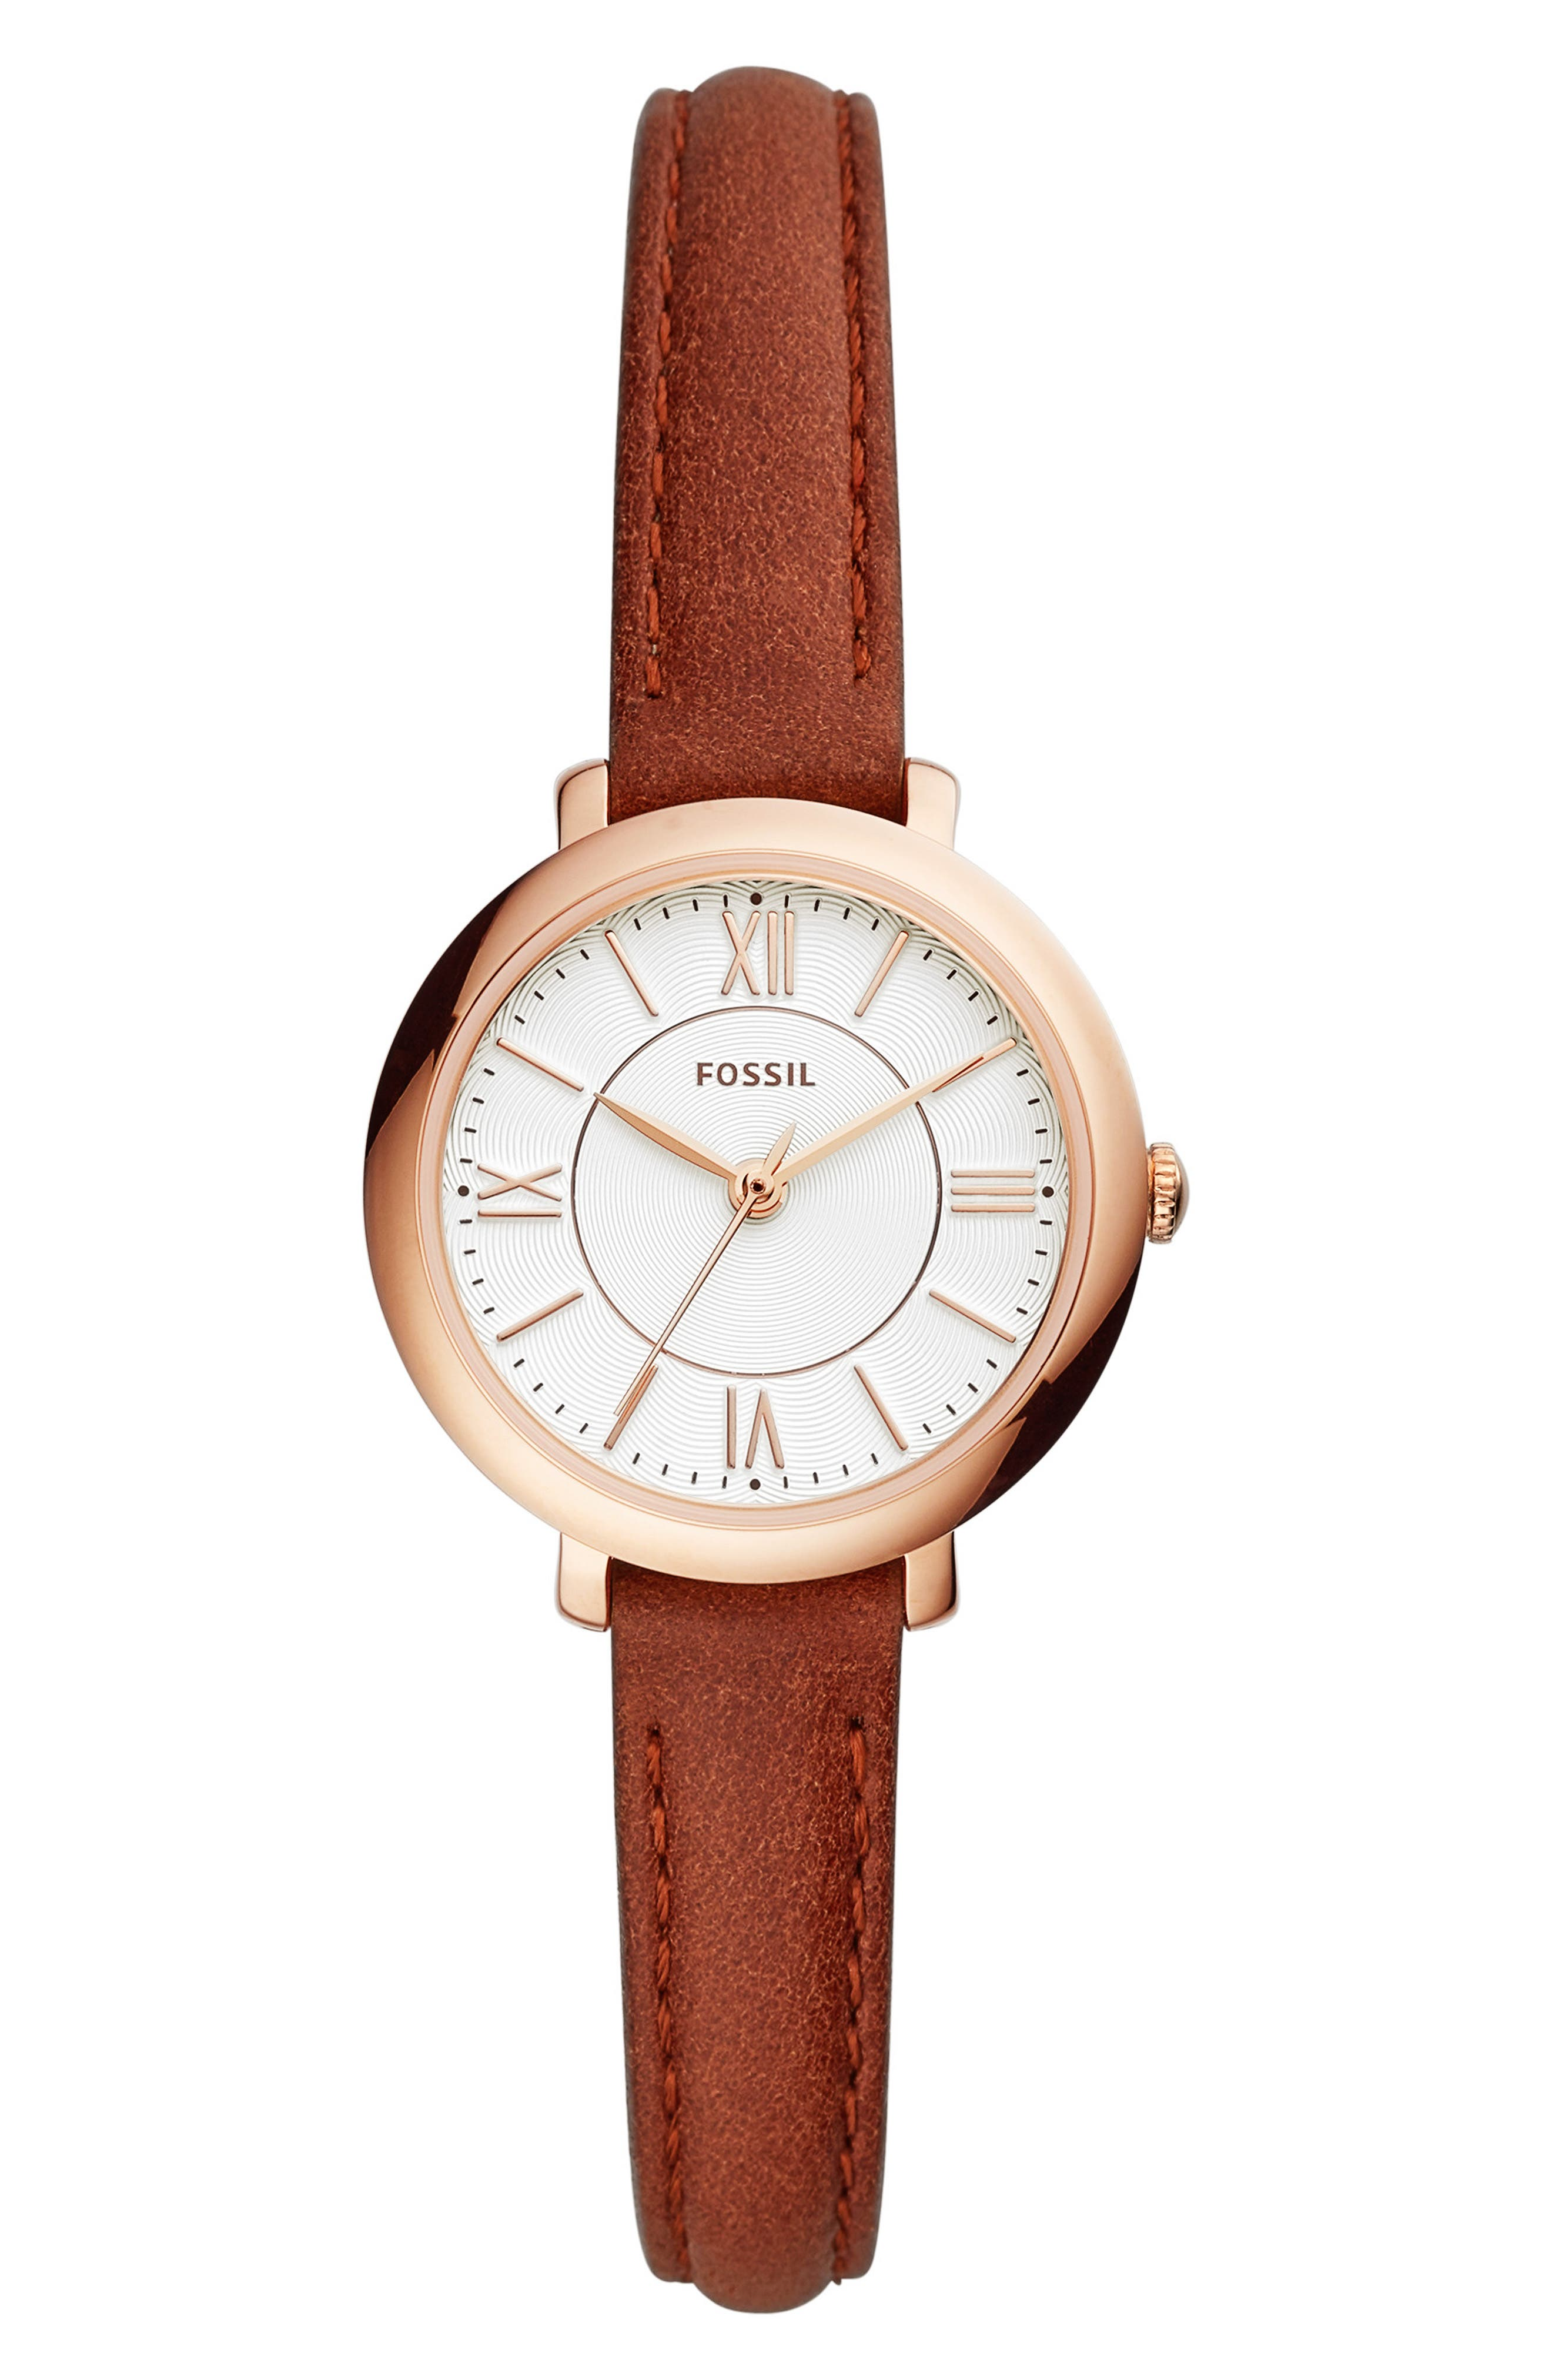 FOSSIL Mini Jacqueline Leather Strap Watch, 27mm, Main, color, BROWN/ WHITE/ ROSE GOLD